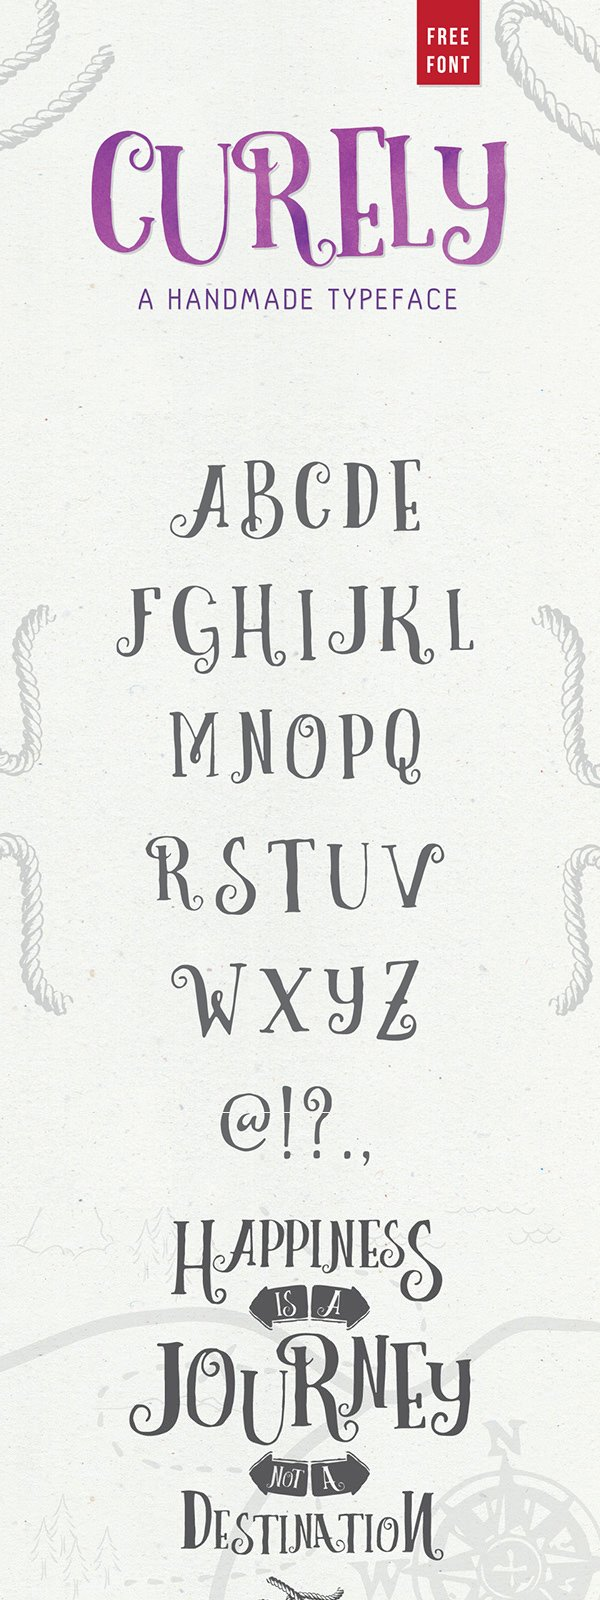 Curely Free Typeface